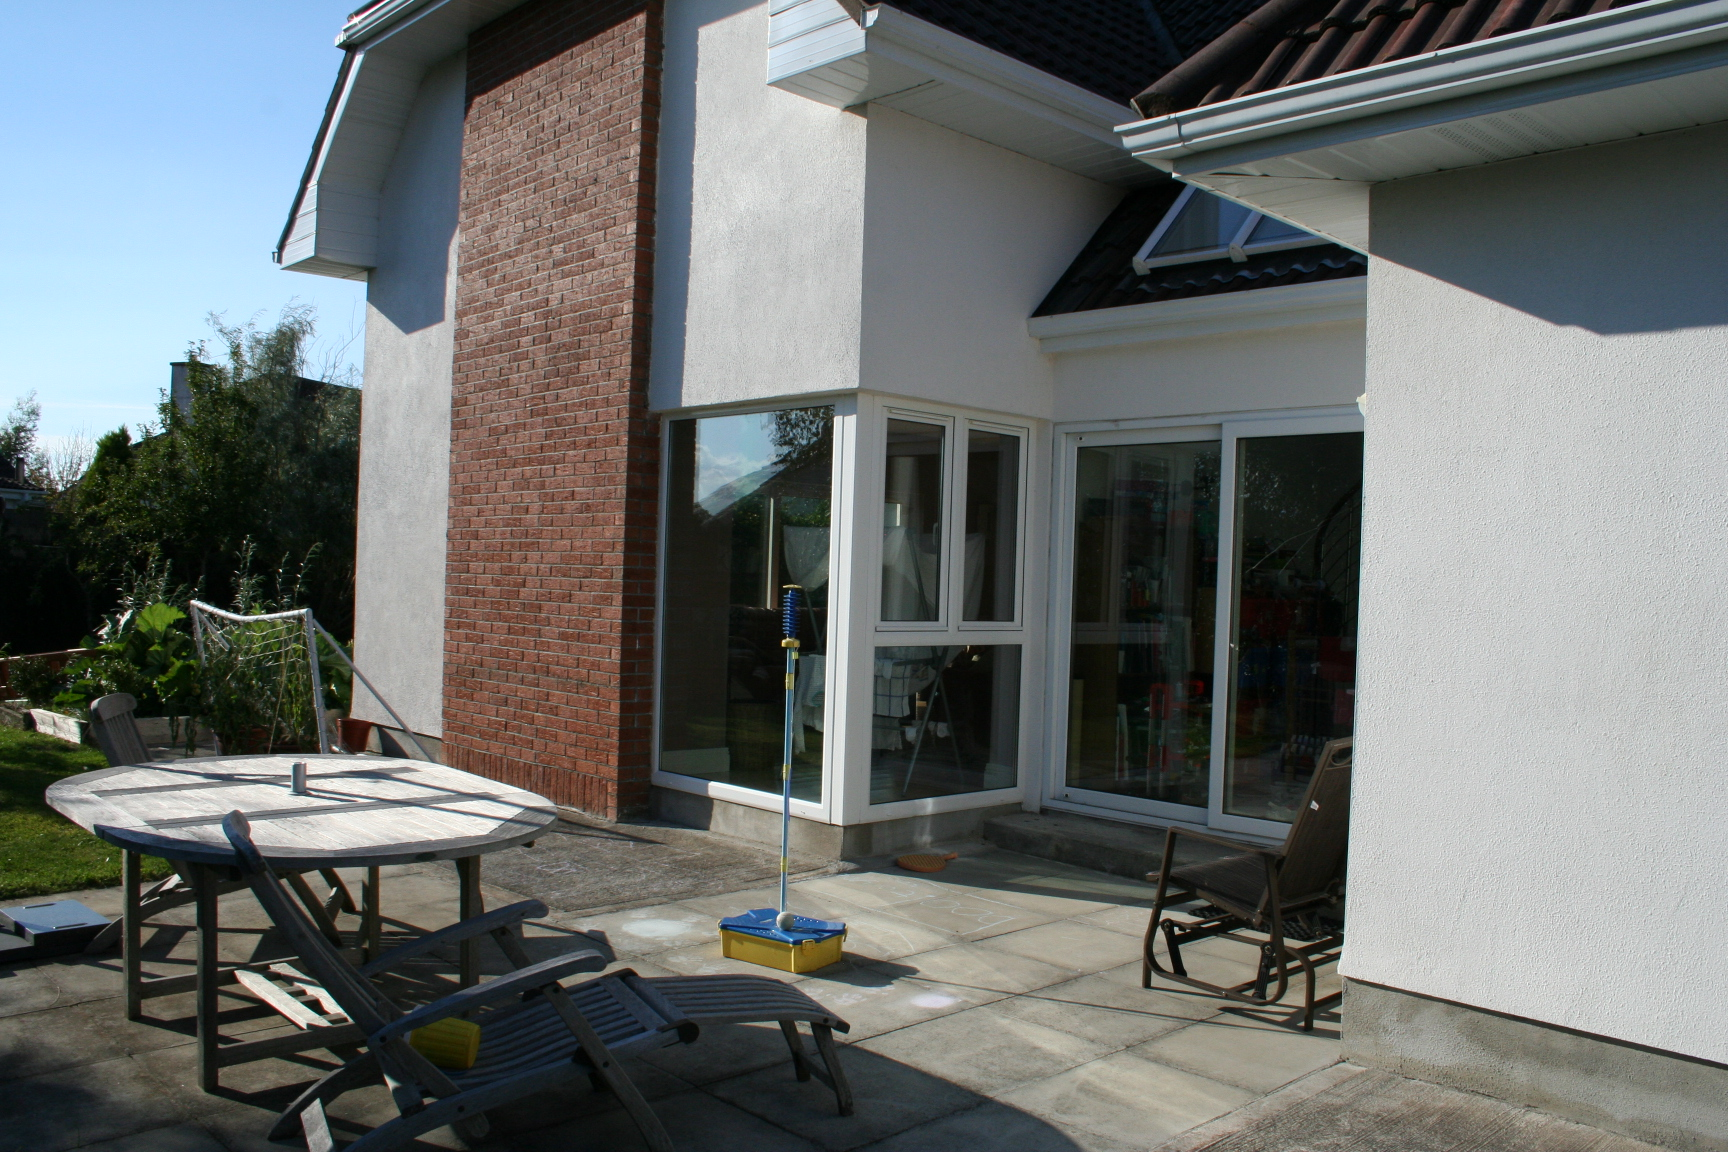 Exterior of Kitchen extension